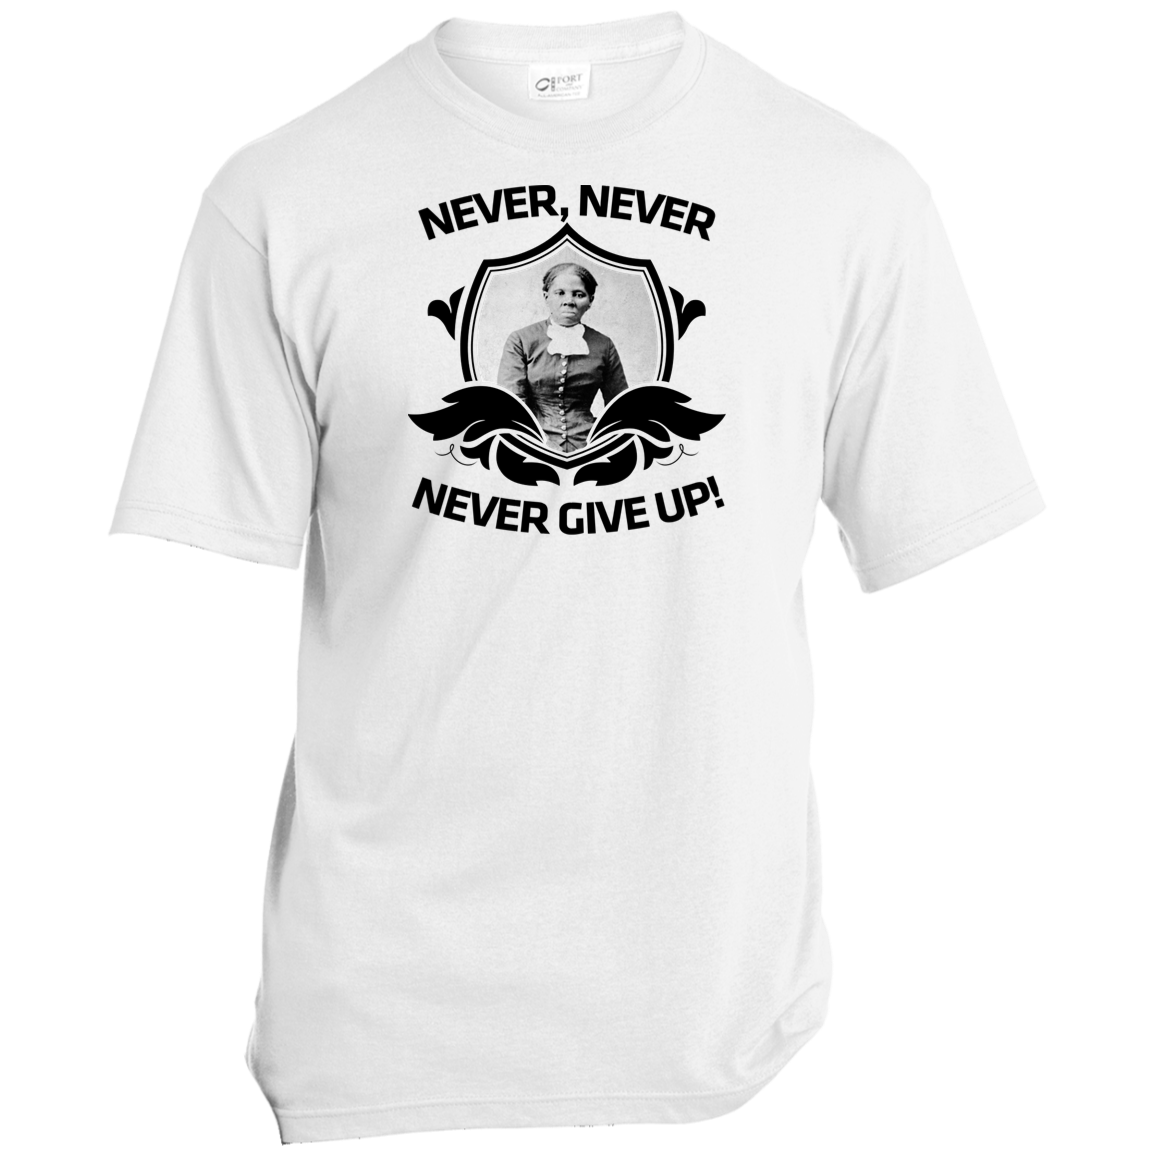 #2 Harriet Tubman, Never, Never, Never Give Up! USA100 Made in the USA Unisex T-Shirt